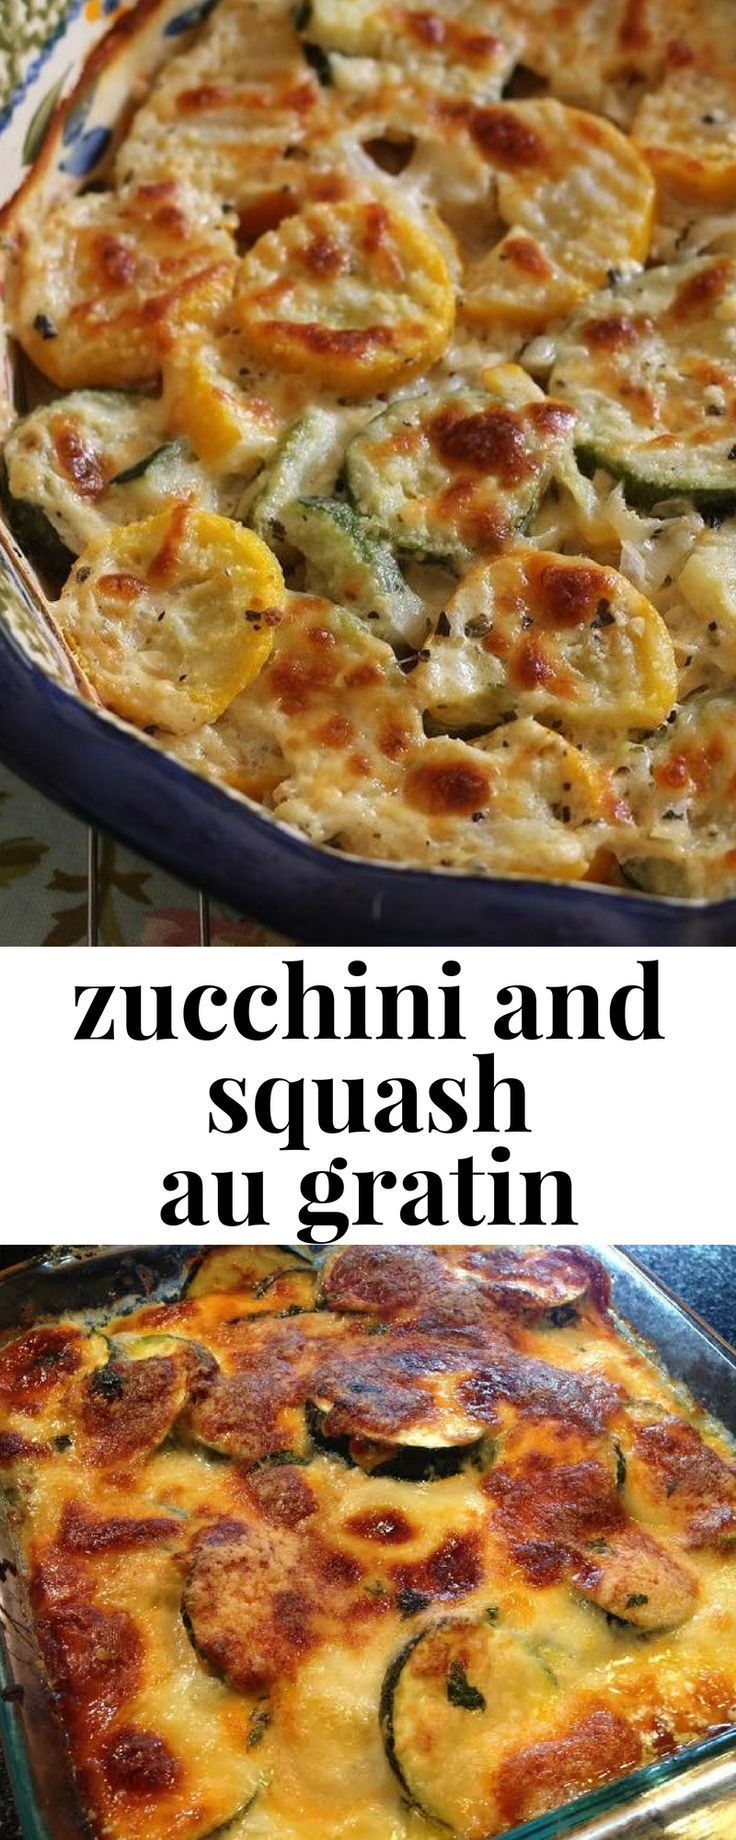 Zucchini and Squash Au Gratin images